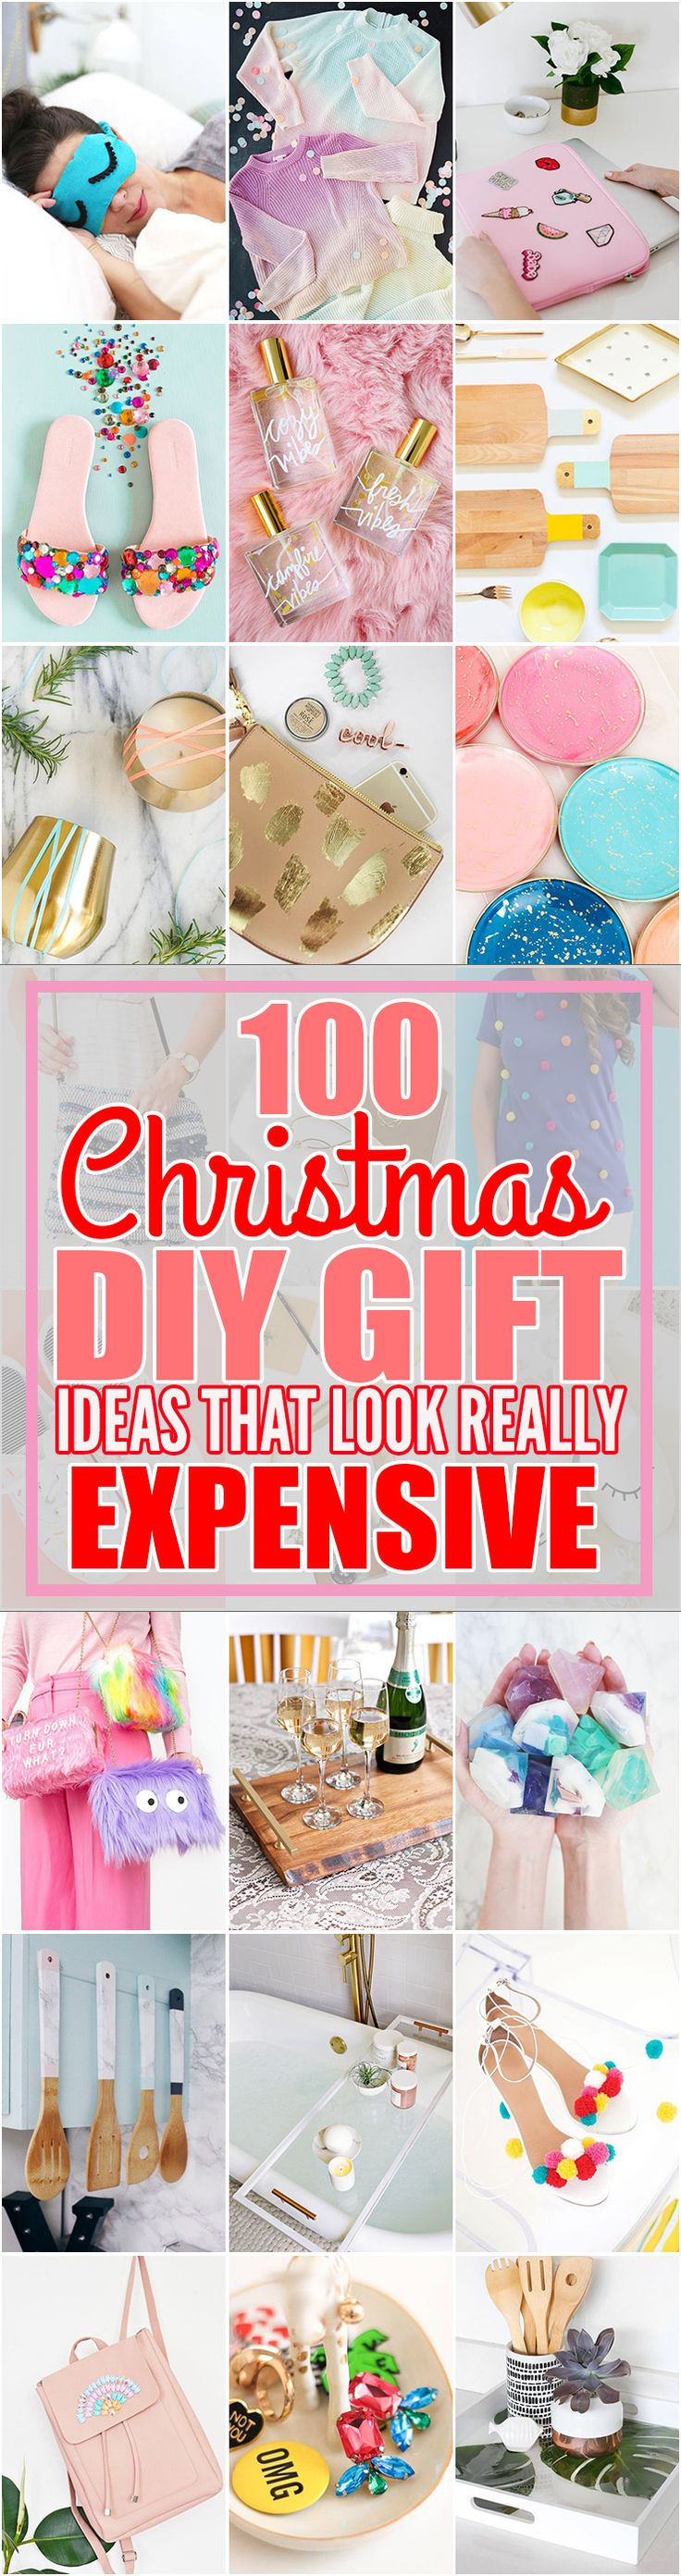 This list of 100 expensive looking DIY gifts is exactly what I've been looking for. This post contains a ton of expensive looking DIY gifts that are perfect for birthdays, Mother's Day, Christmas, and more. I will save a ton of money this Christmas holiday season by creating some of these expensive looking DIY Christmas gifts from this post! You have to check it out for yourself